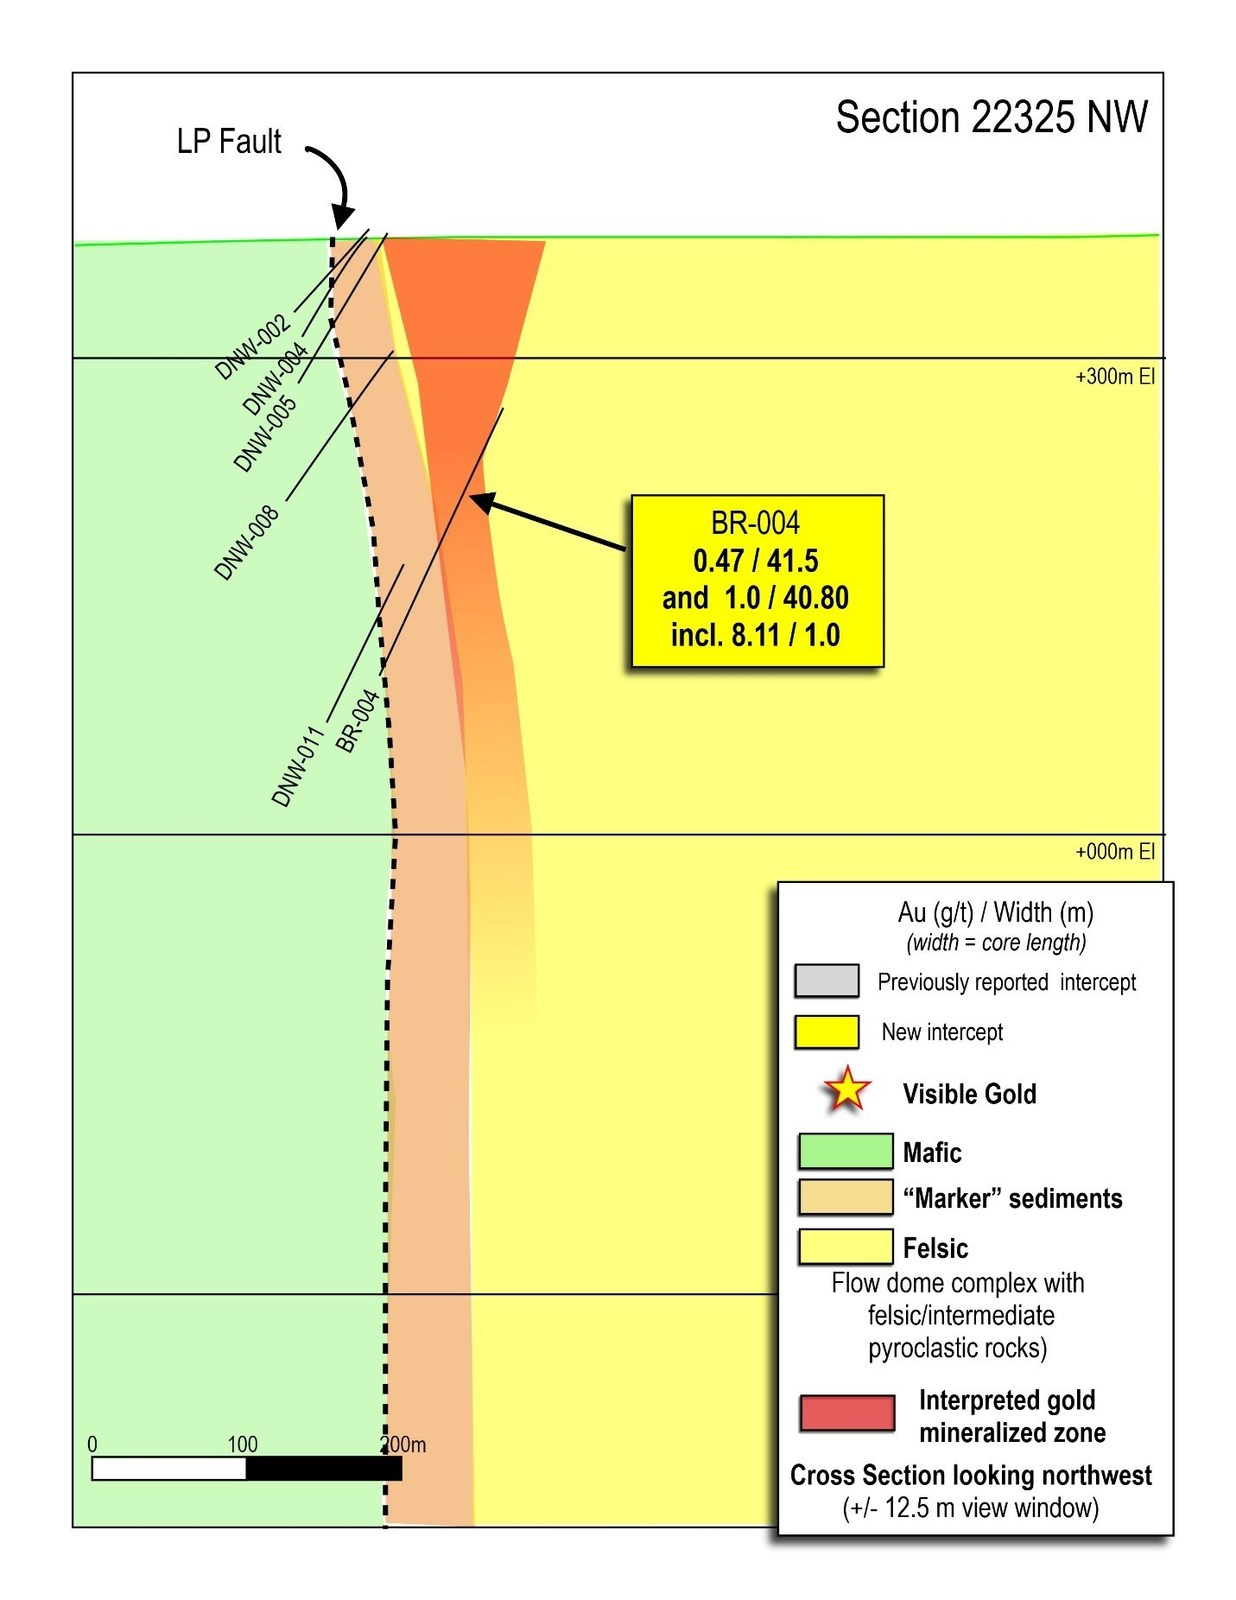 Figure 7: Cross section 22325 through the Bear-Rimini Discovery Zone.  Drill hole BR-004 intersected three shallow gold zones.